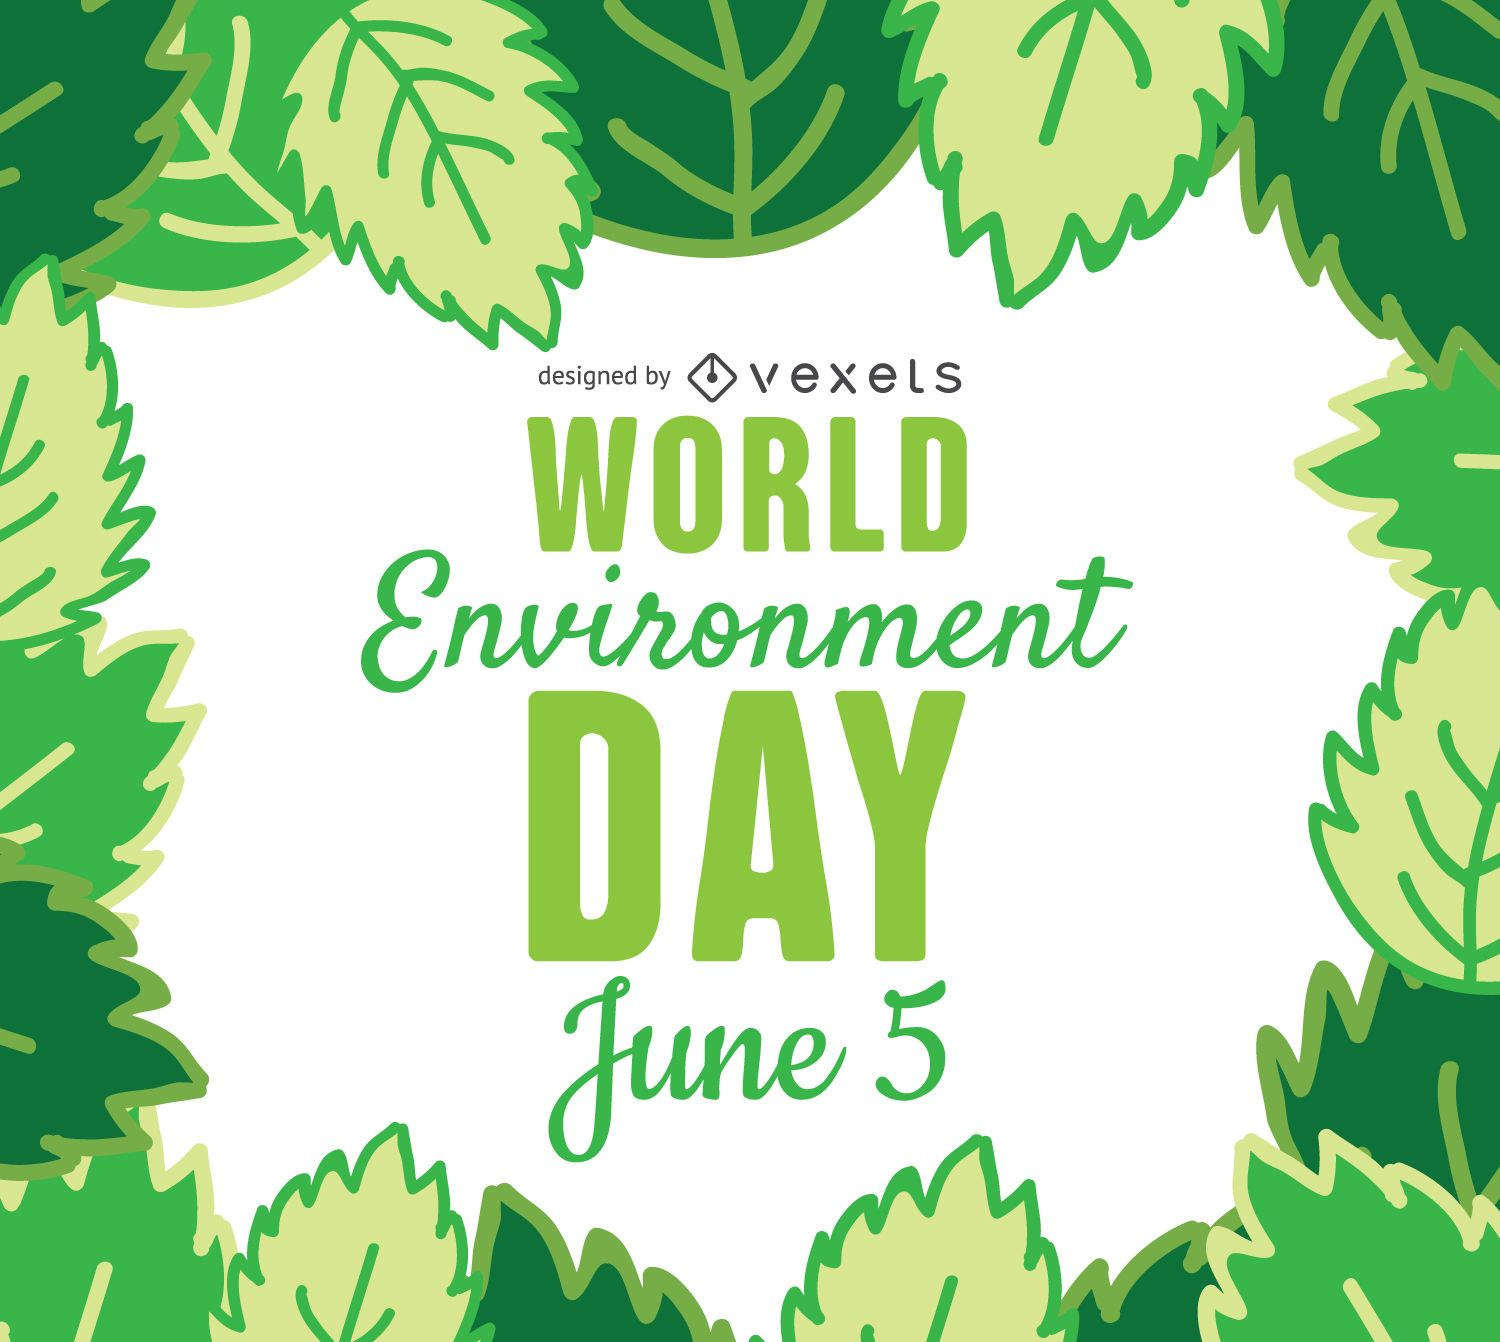 World environment day leaves frame - Vector download